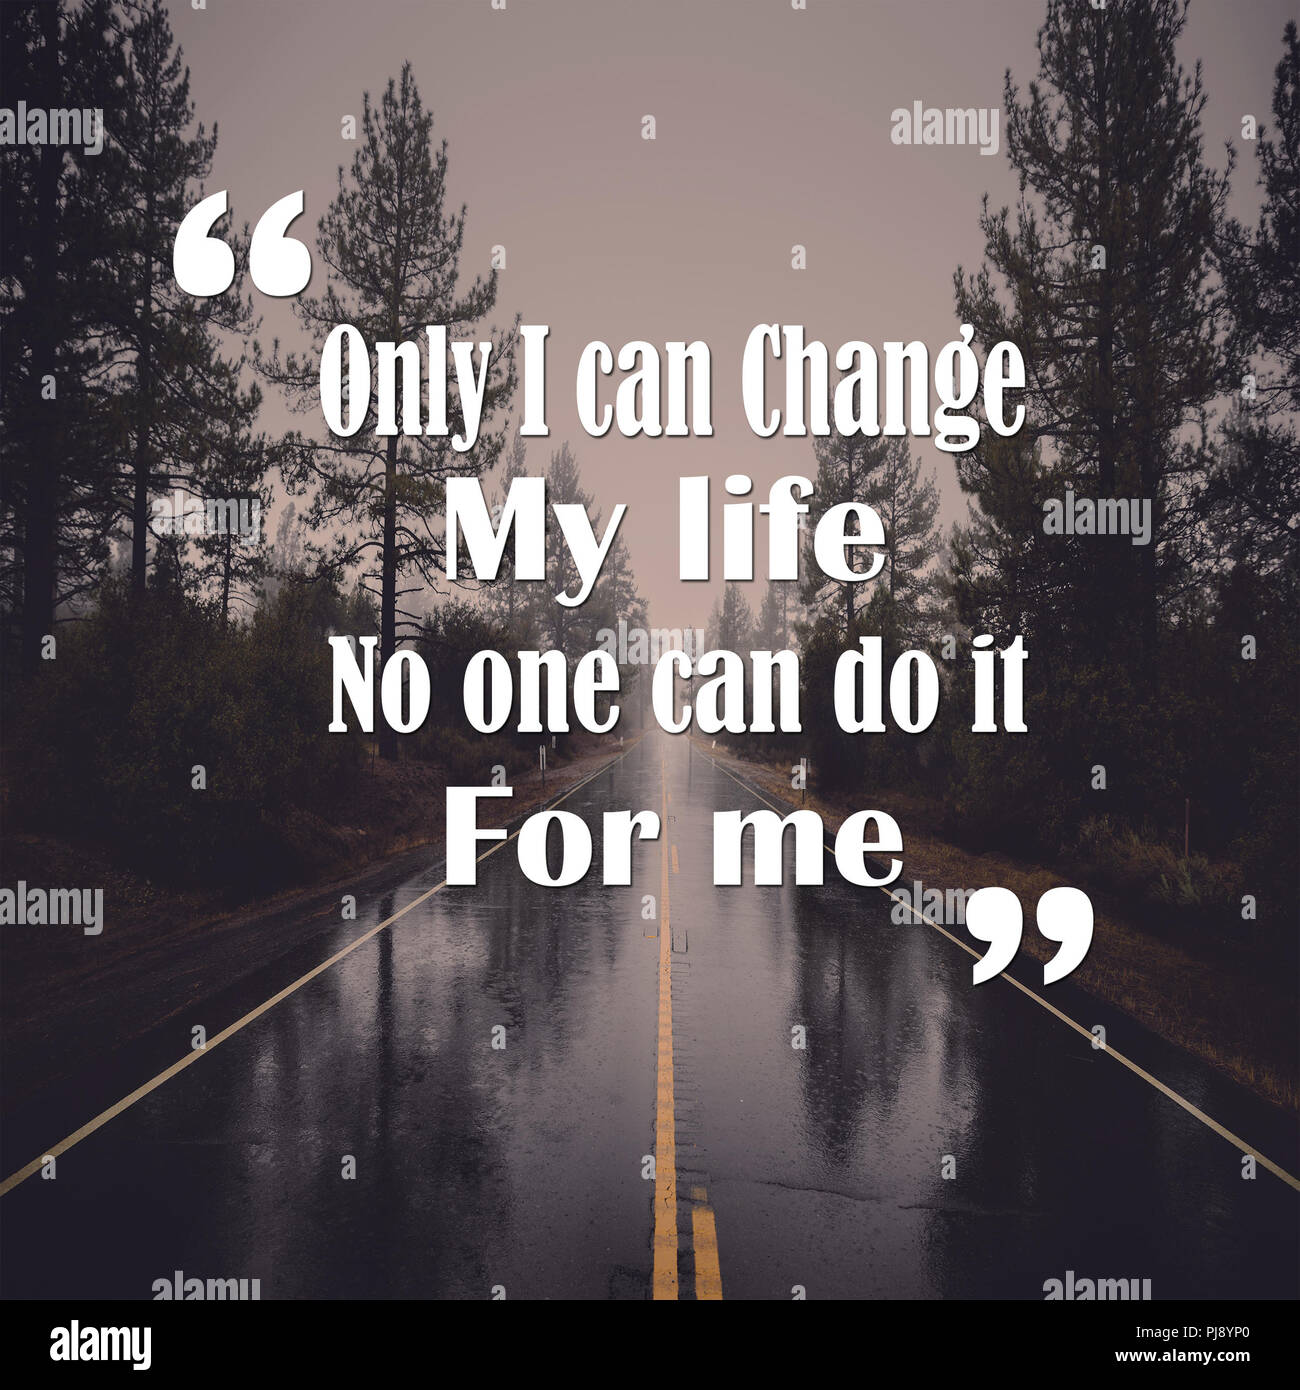 Life Quotes Only I Can Change My Life No One Can Do It For Me